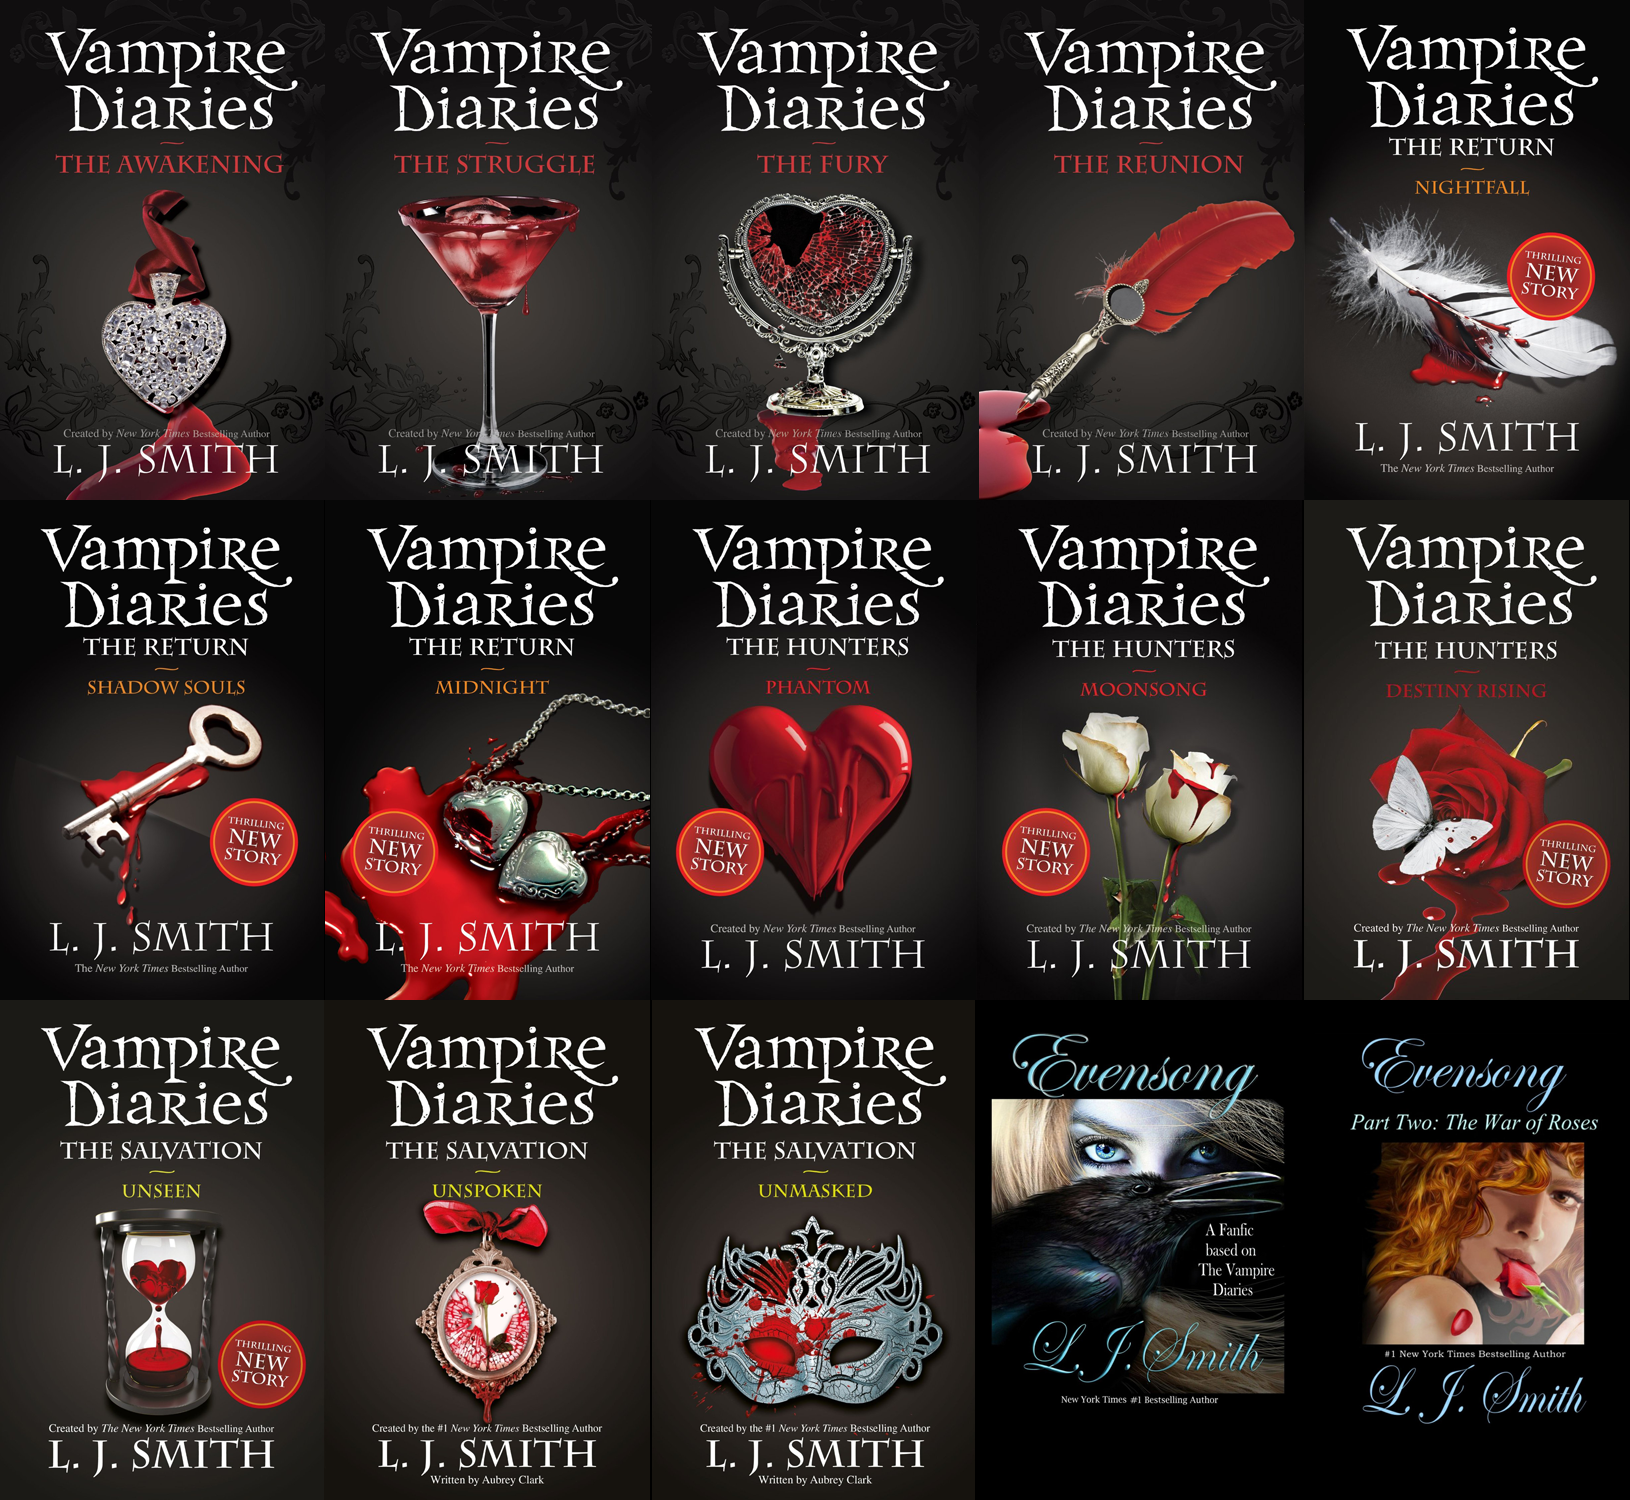 Vampire diaries books in order - all 13 of them!